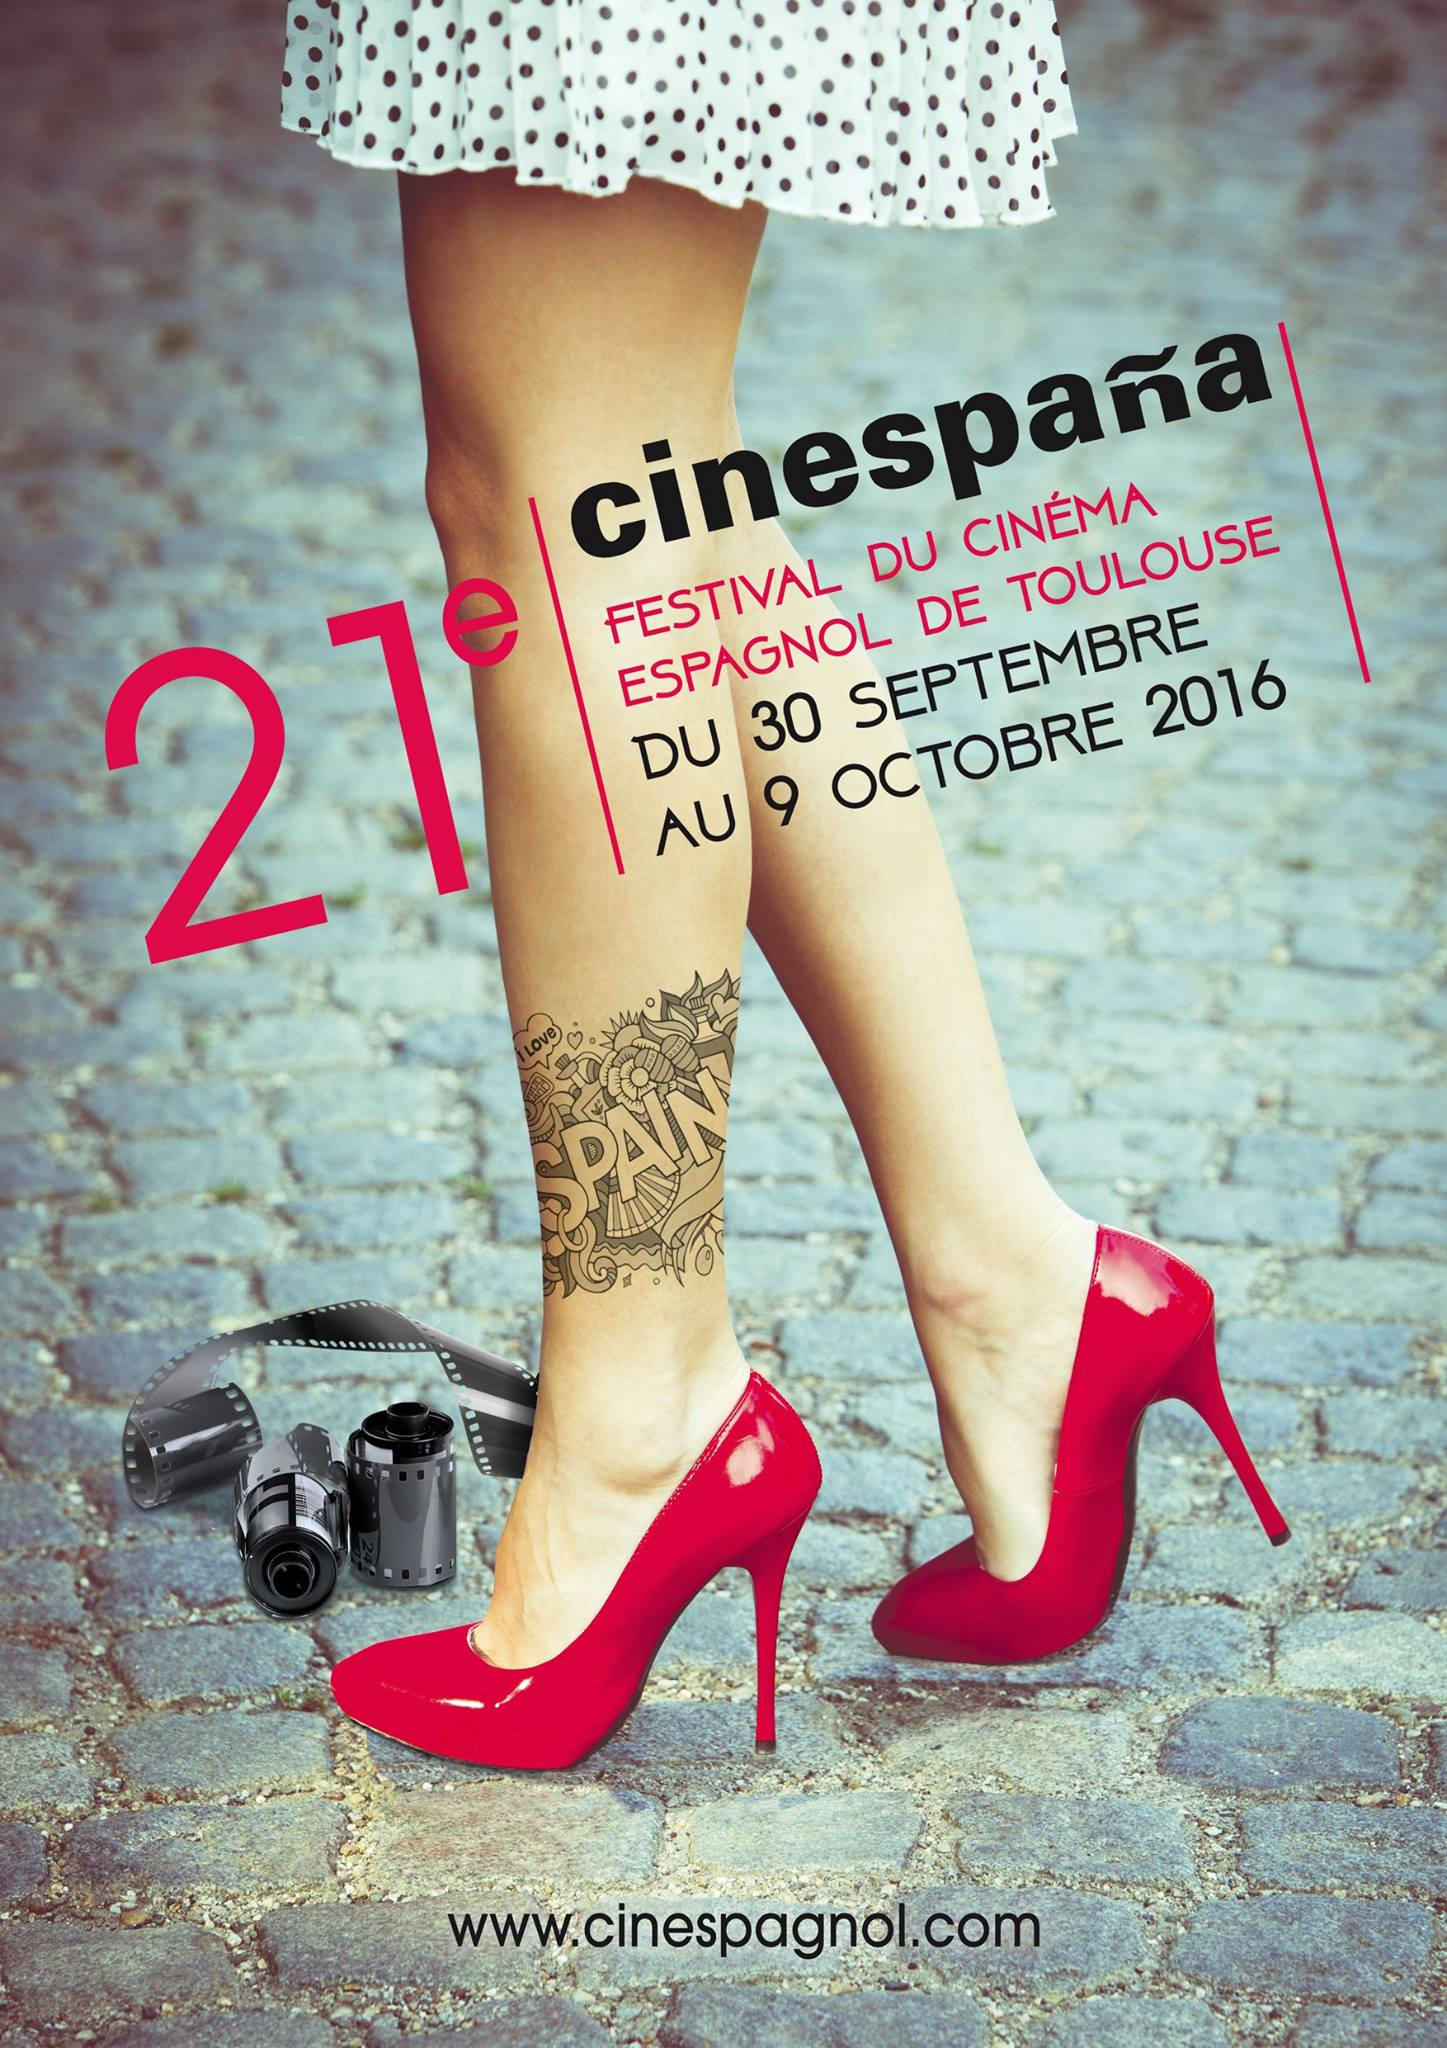 Cinespana 2016